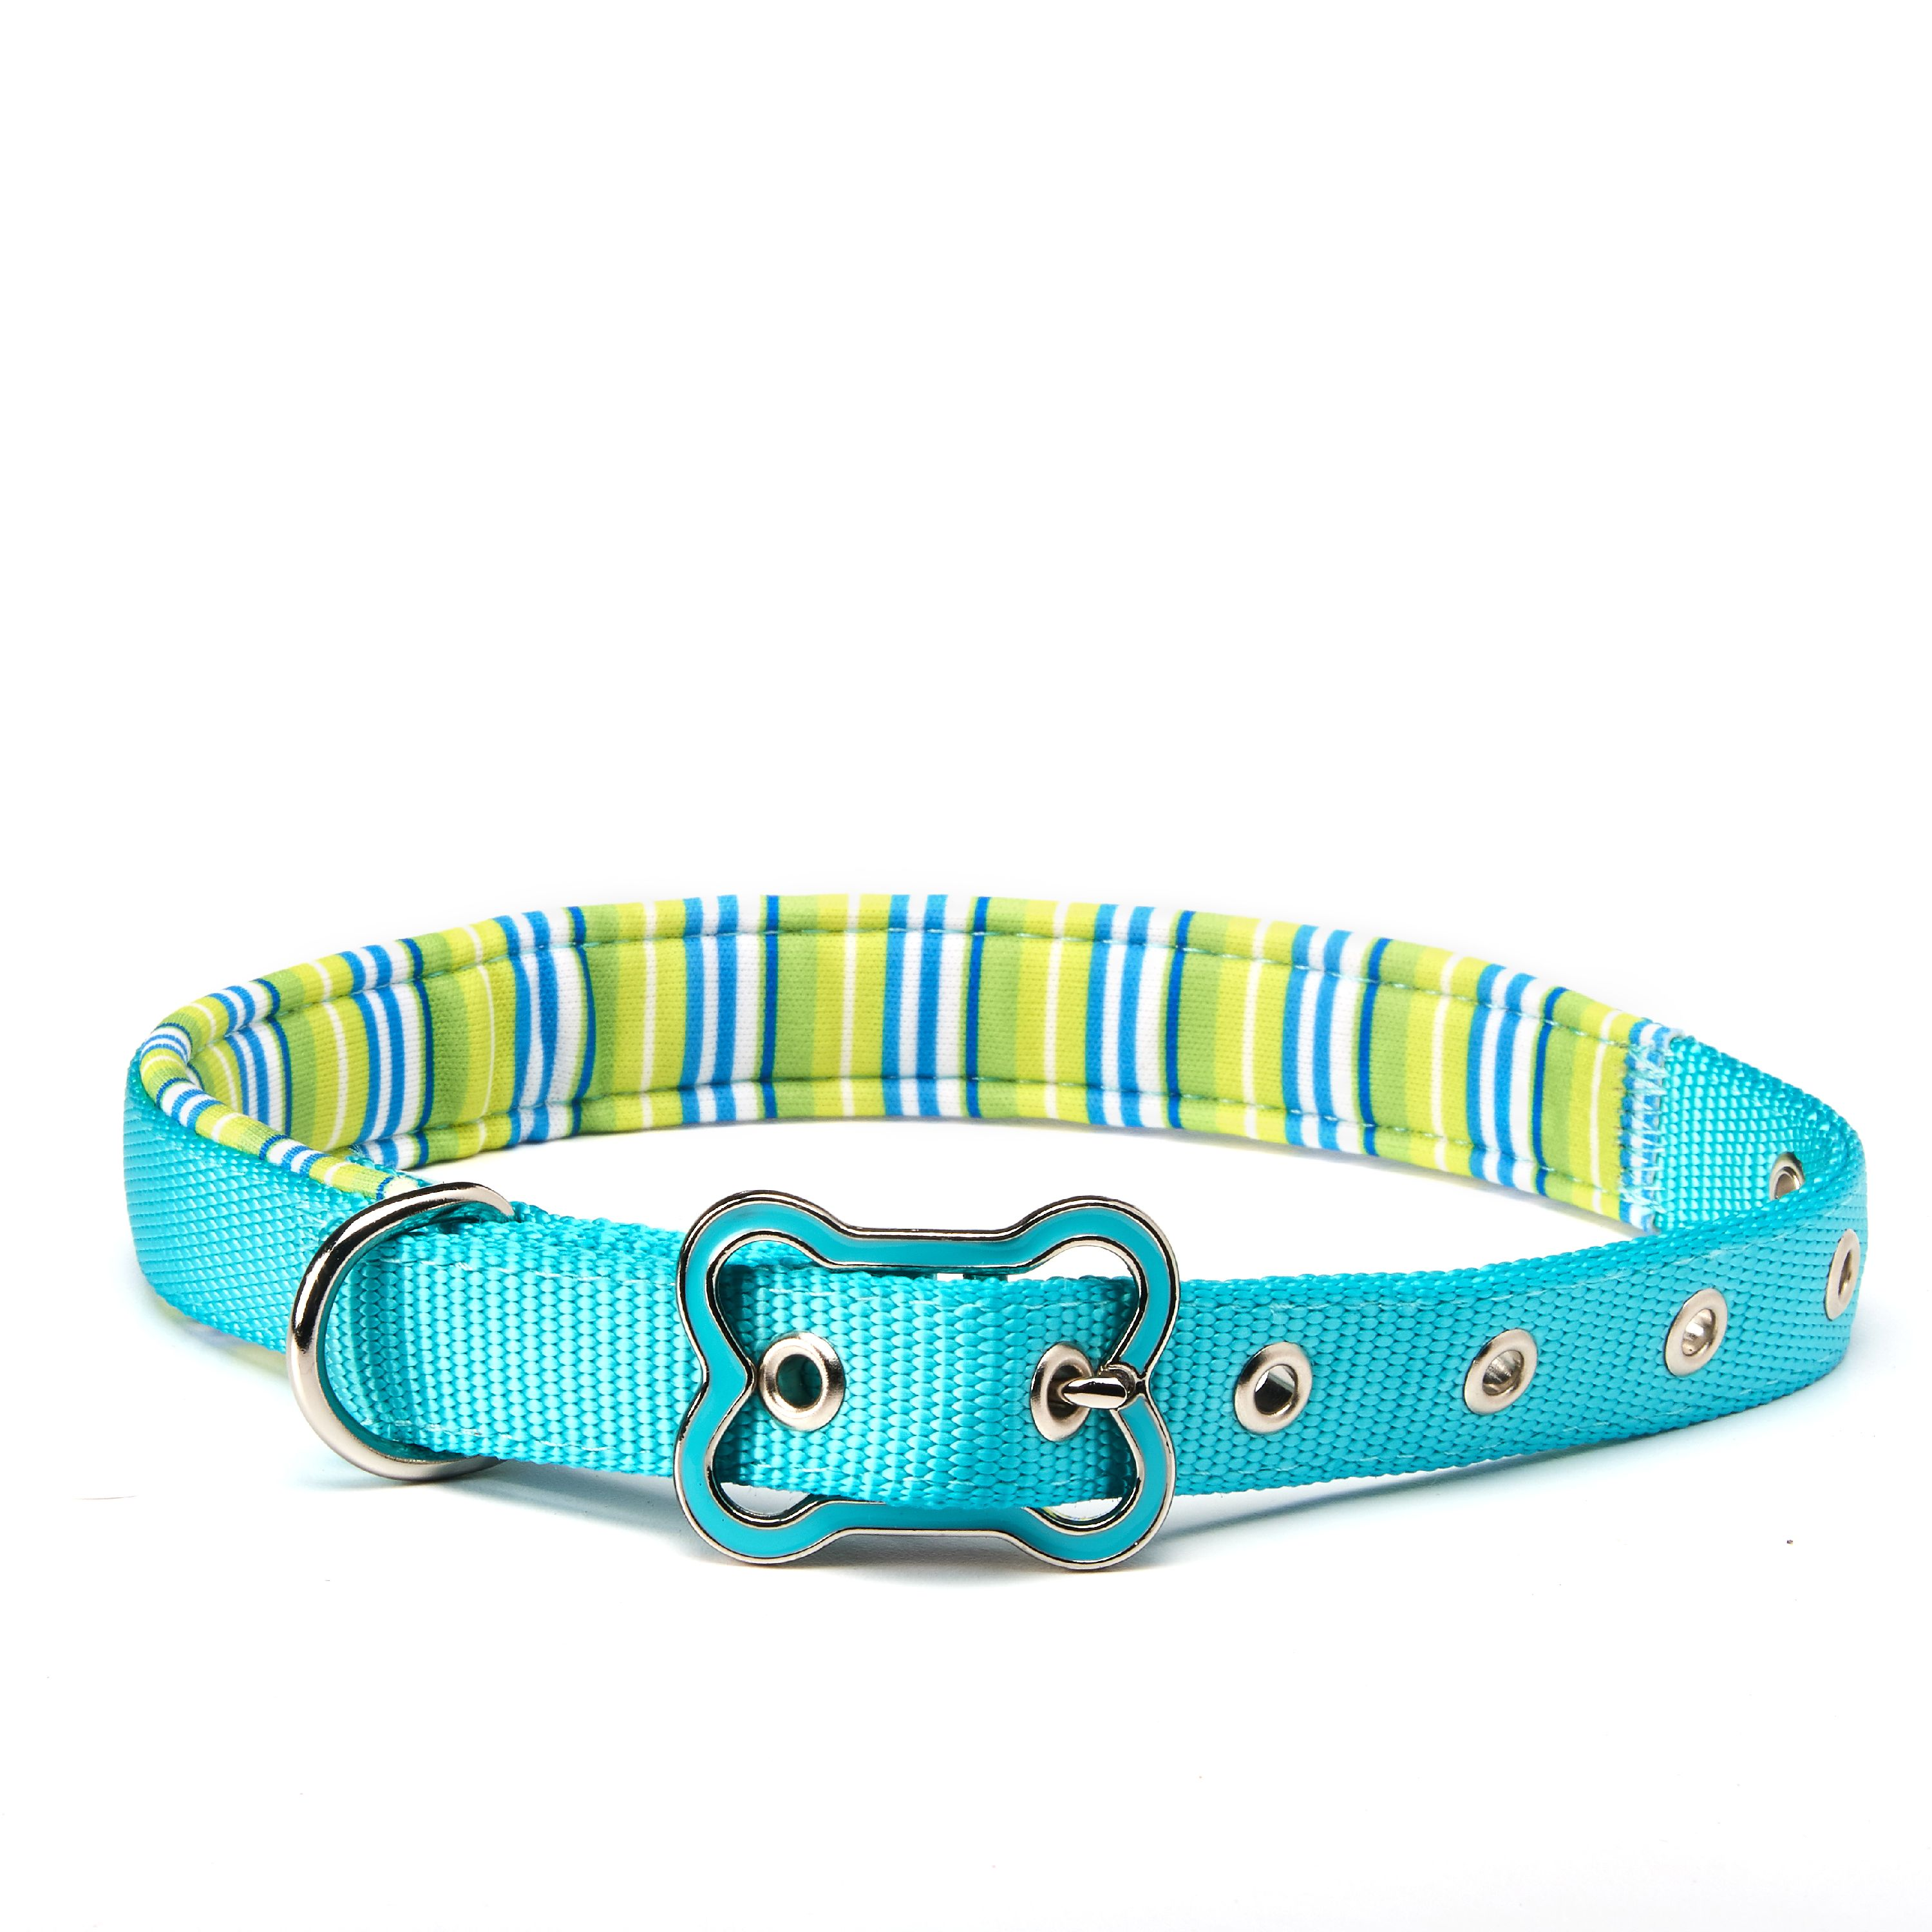 Vibrant Life Teal Striped Comfort Padded Dog Collar, Medium, 14-20 in, 5/8 in